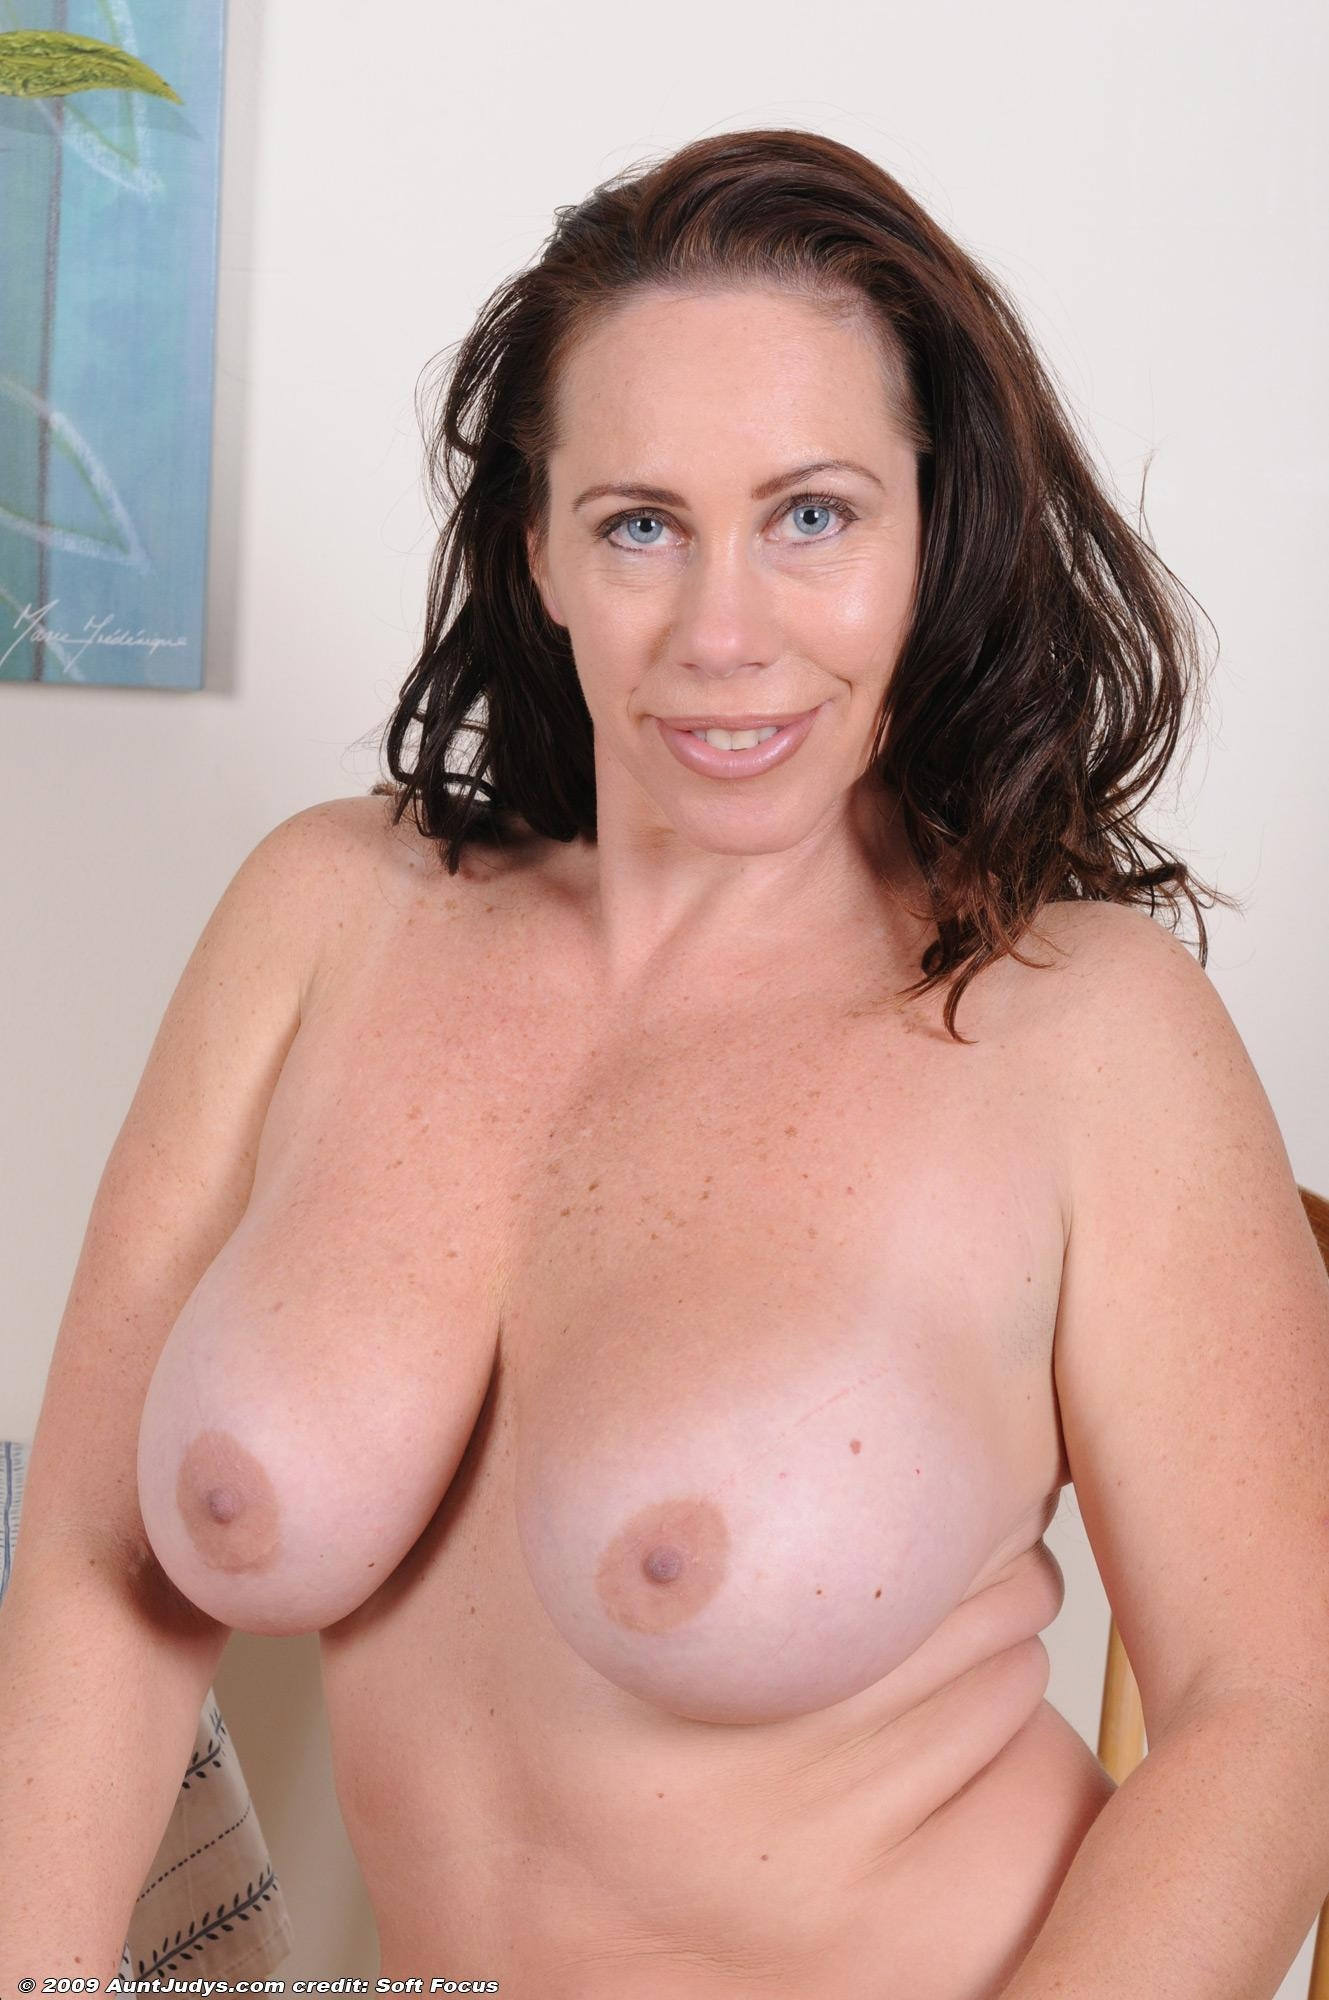 Experienced brunette woman exposing large all natural boobs and big butt